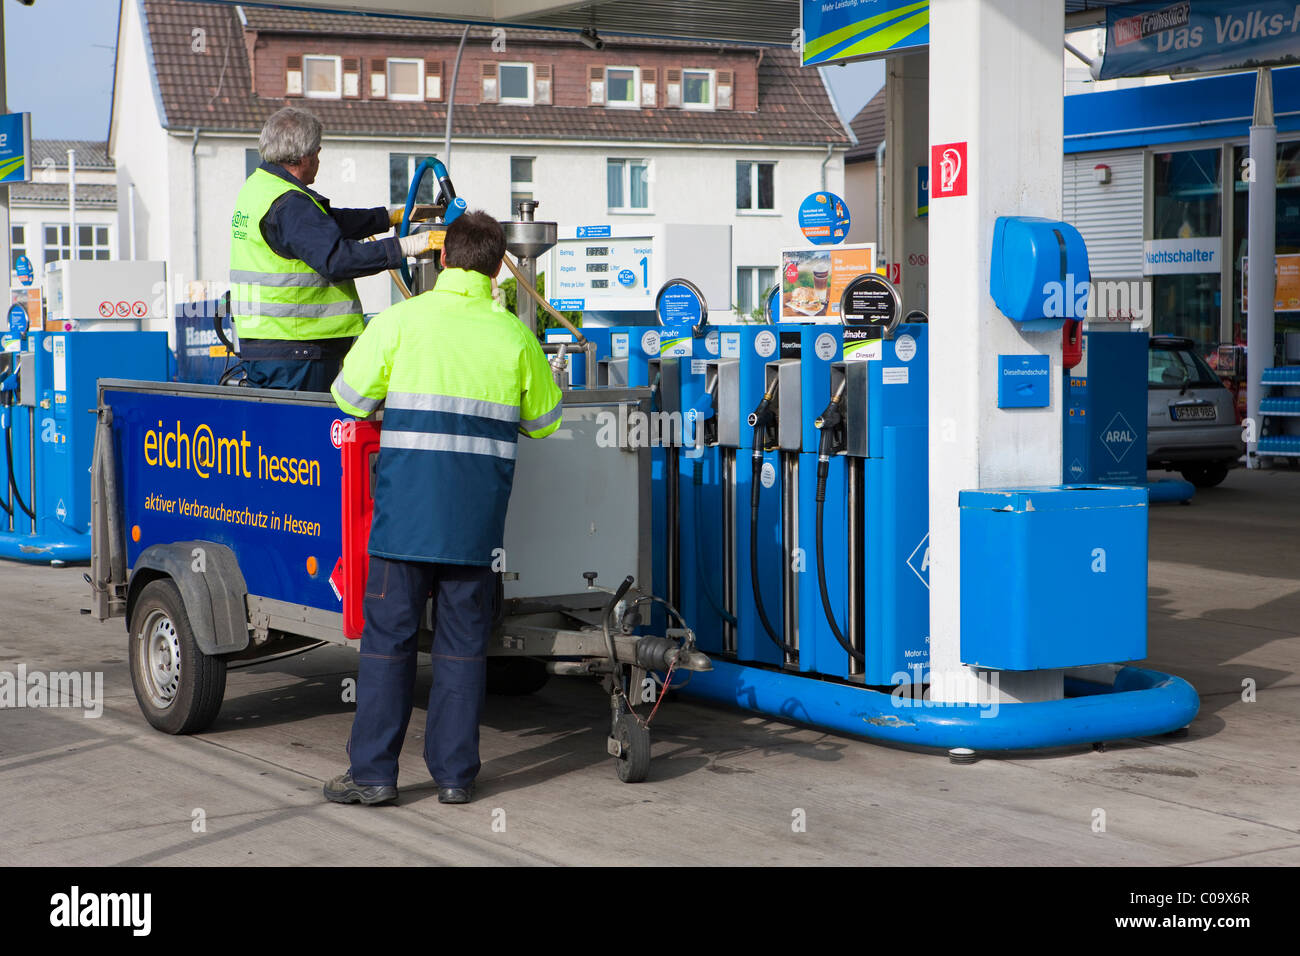 Gauging office controlling fuel pumps at a petrol station, Hesse, Germany, Europe - Stock Image